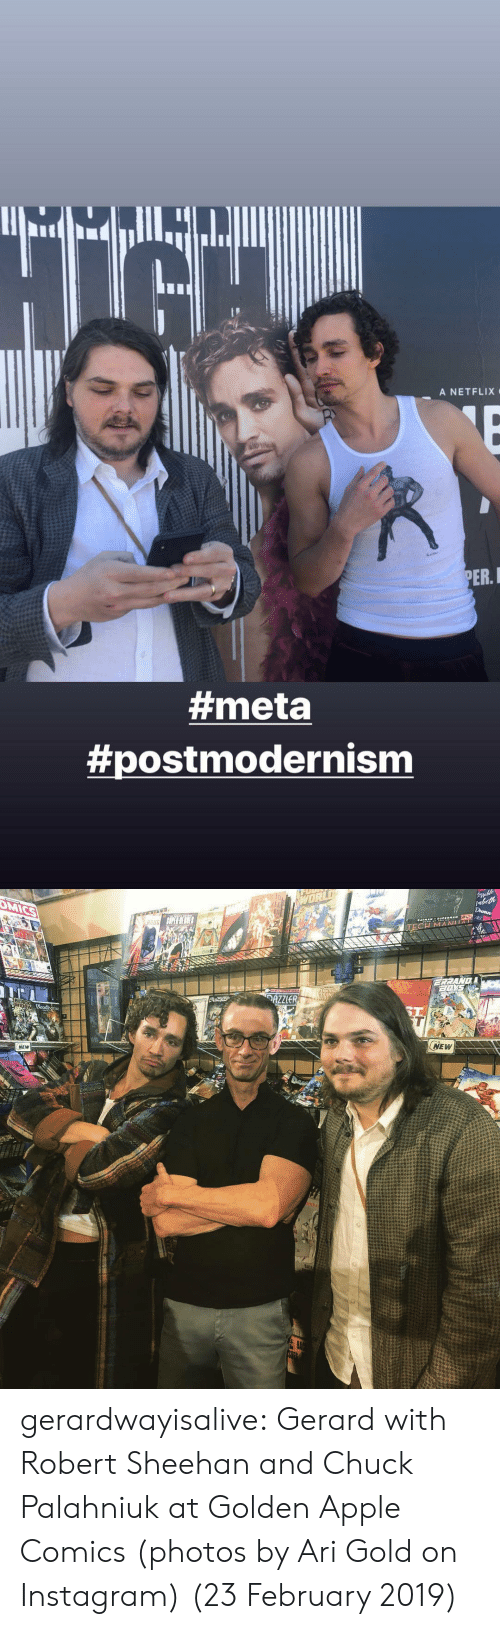 Apple, Instagram, and Netflix: A NETFLIX  PER.  #meta  postmodernism   RBU  NEW  NEW gerardwayisalive: Gerard with Robert Sheehan and Chuck Palahniuk at Golden Apple Comics (photos by Ari Gold on Instagram) (23 February 2019)